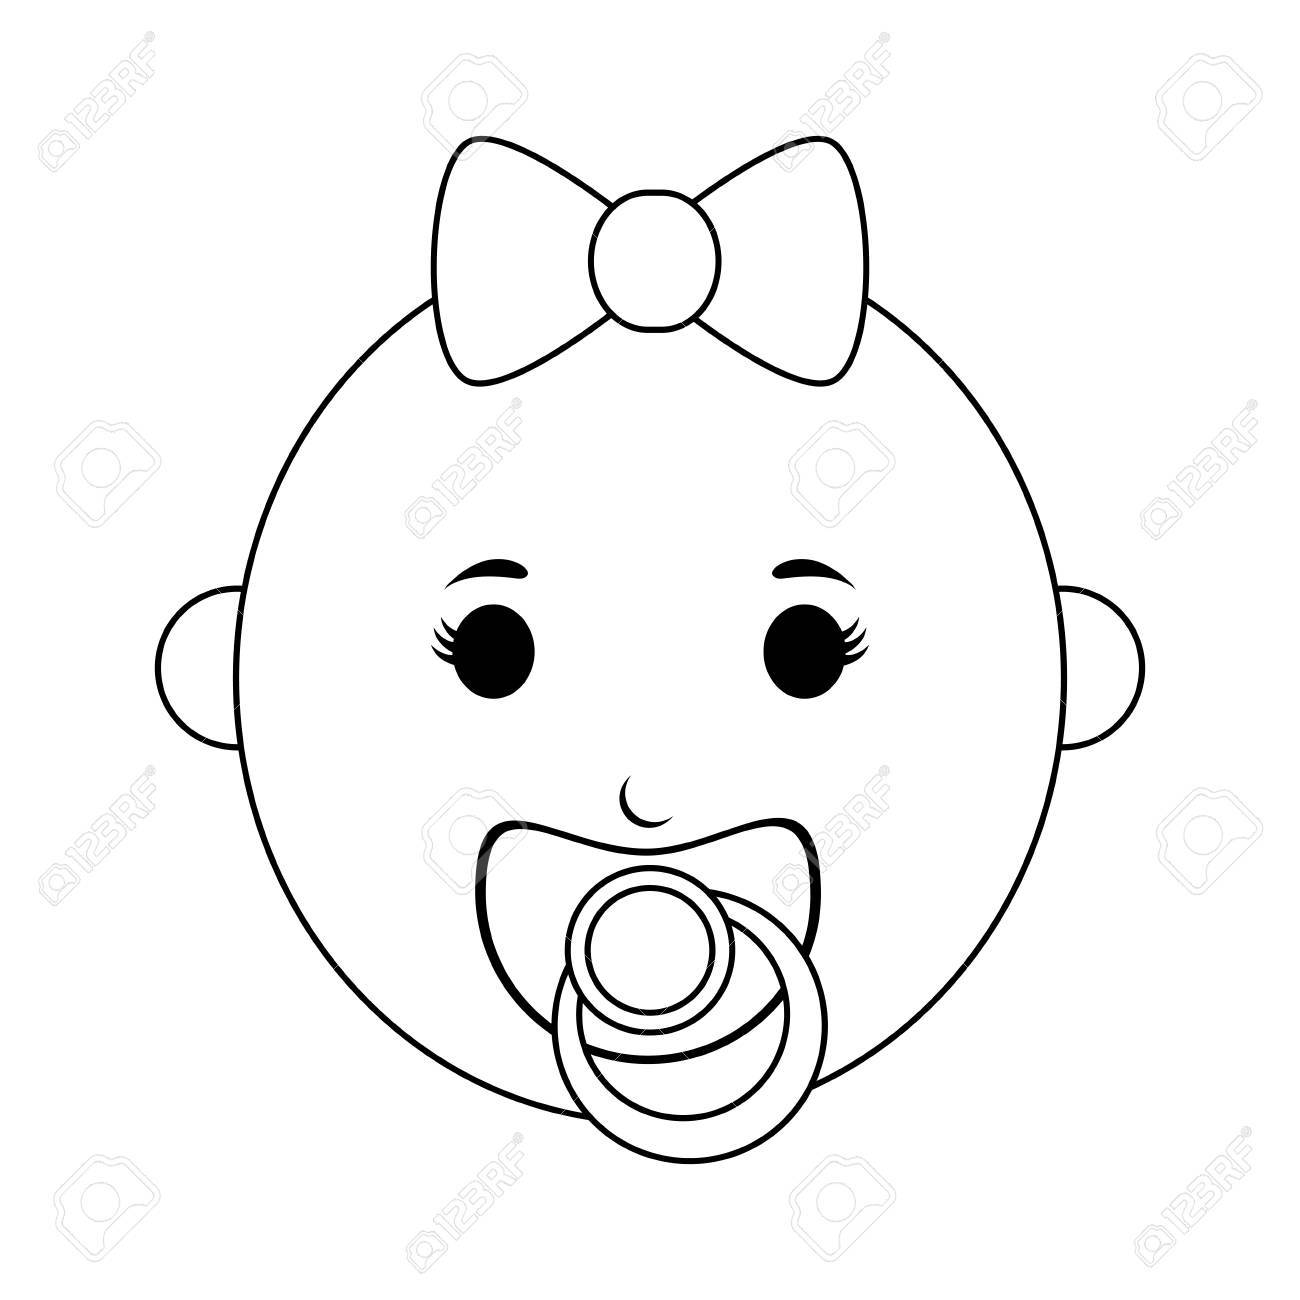 female baby with pacifier icon image vector illustration design